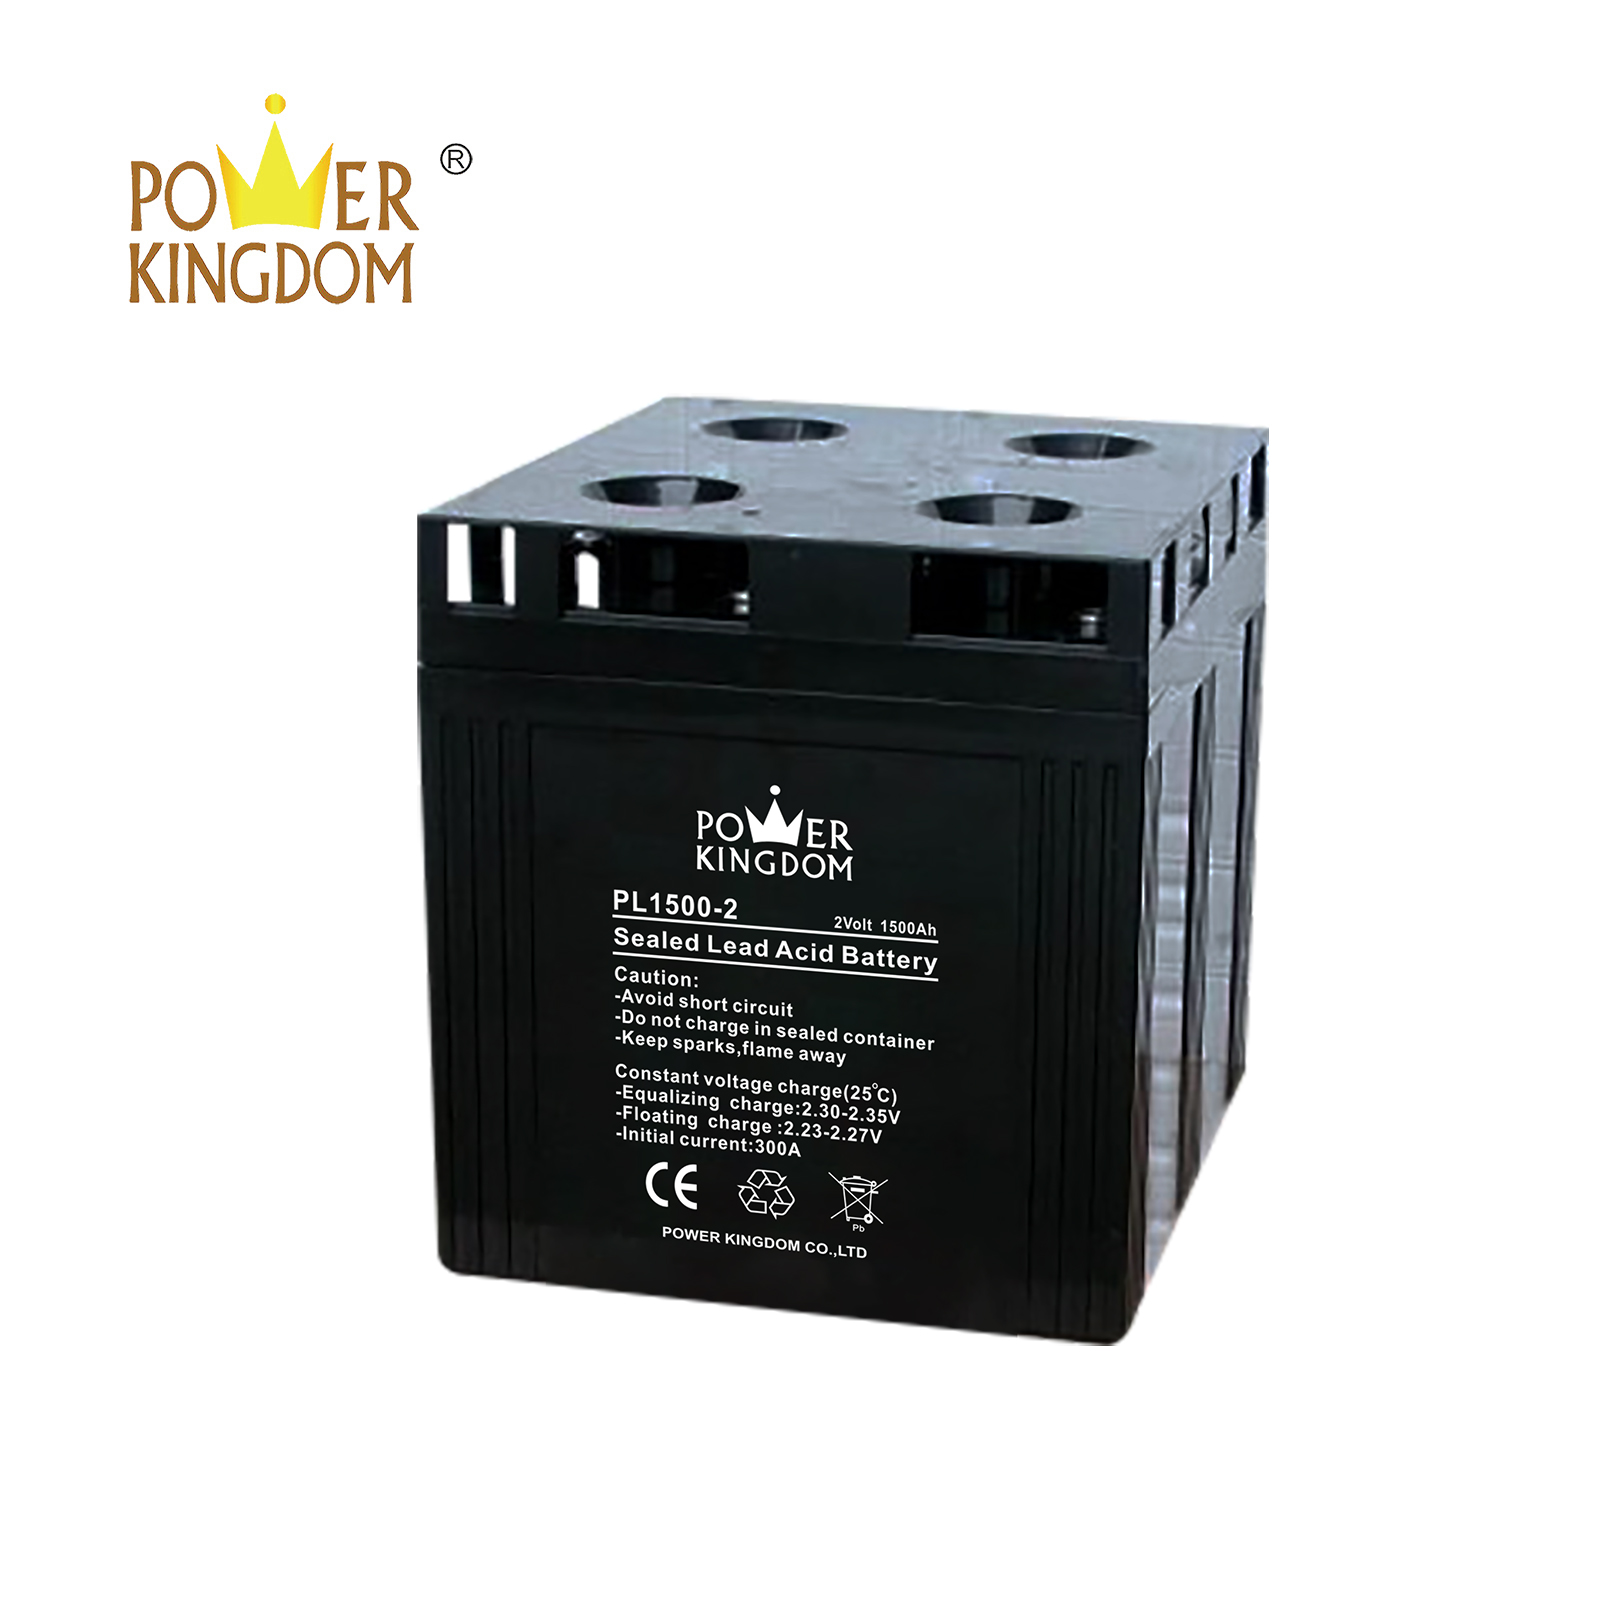 Power Kingdom good quality flooded cell battery Supply fire system